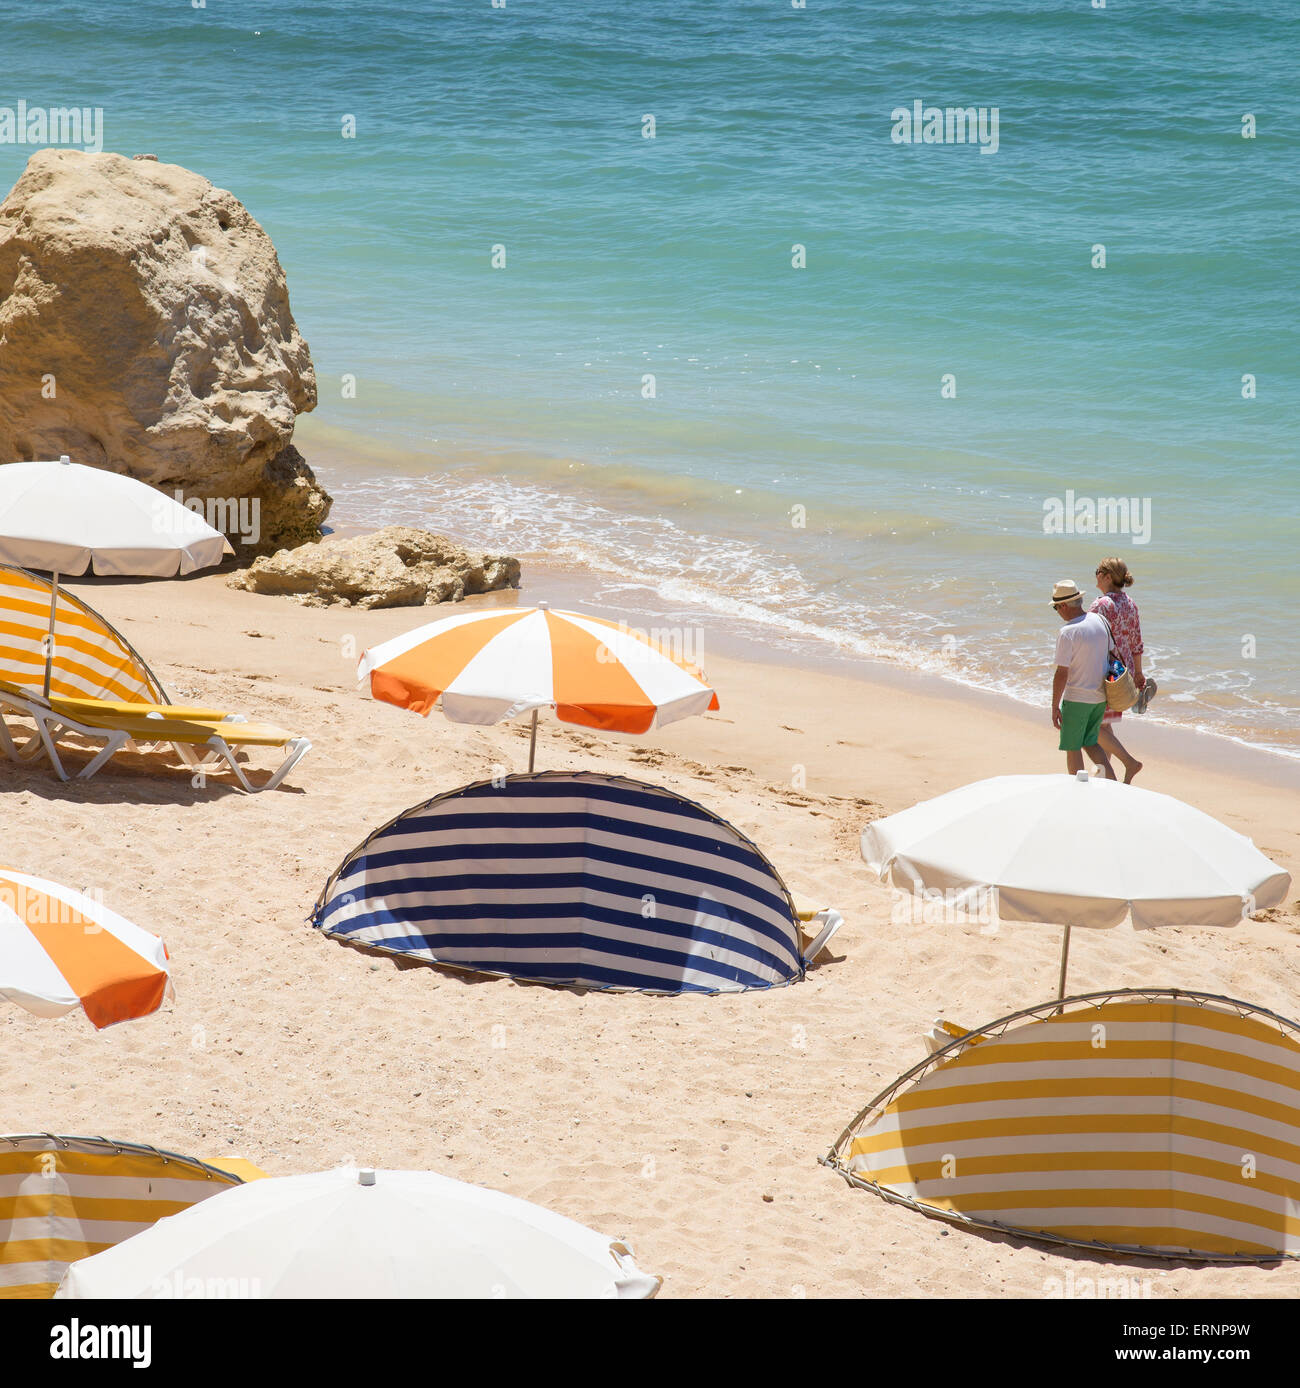 The beach in the Algarve town of Armacao de Pera southern Portugal - Stock Image